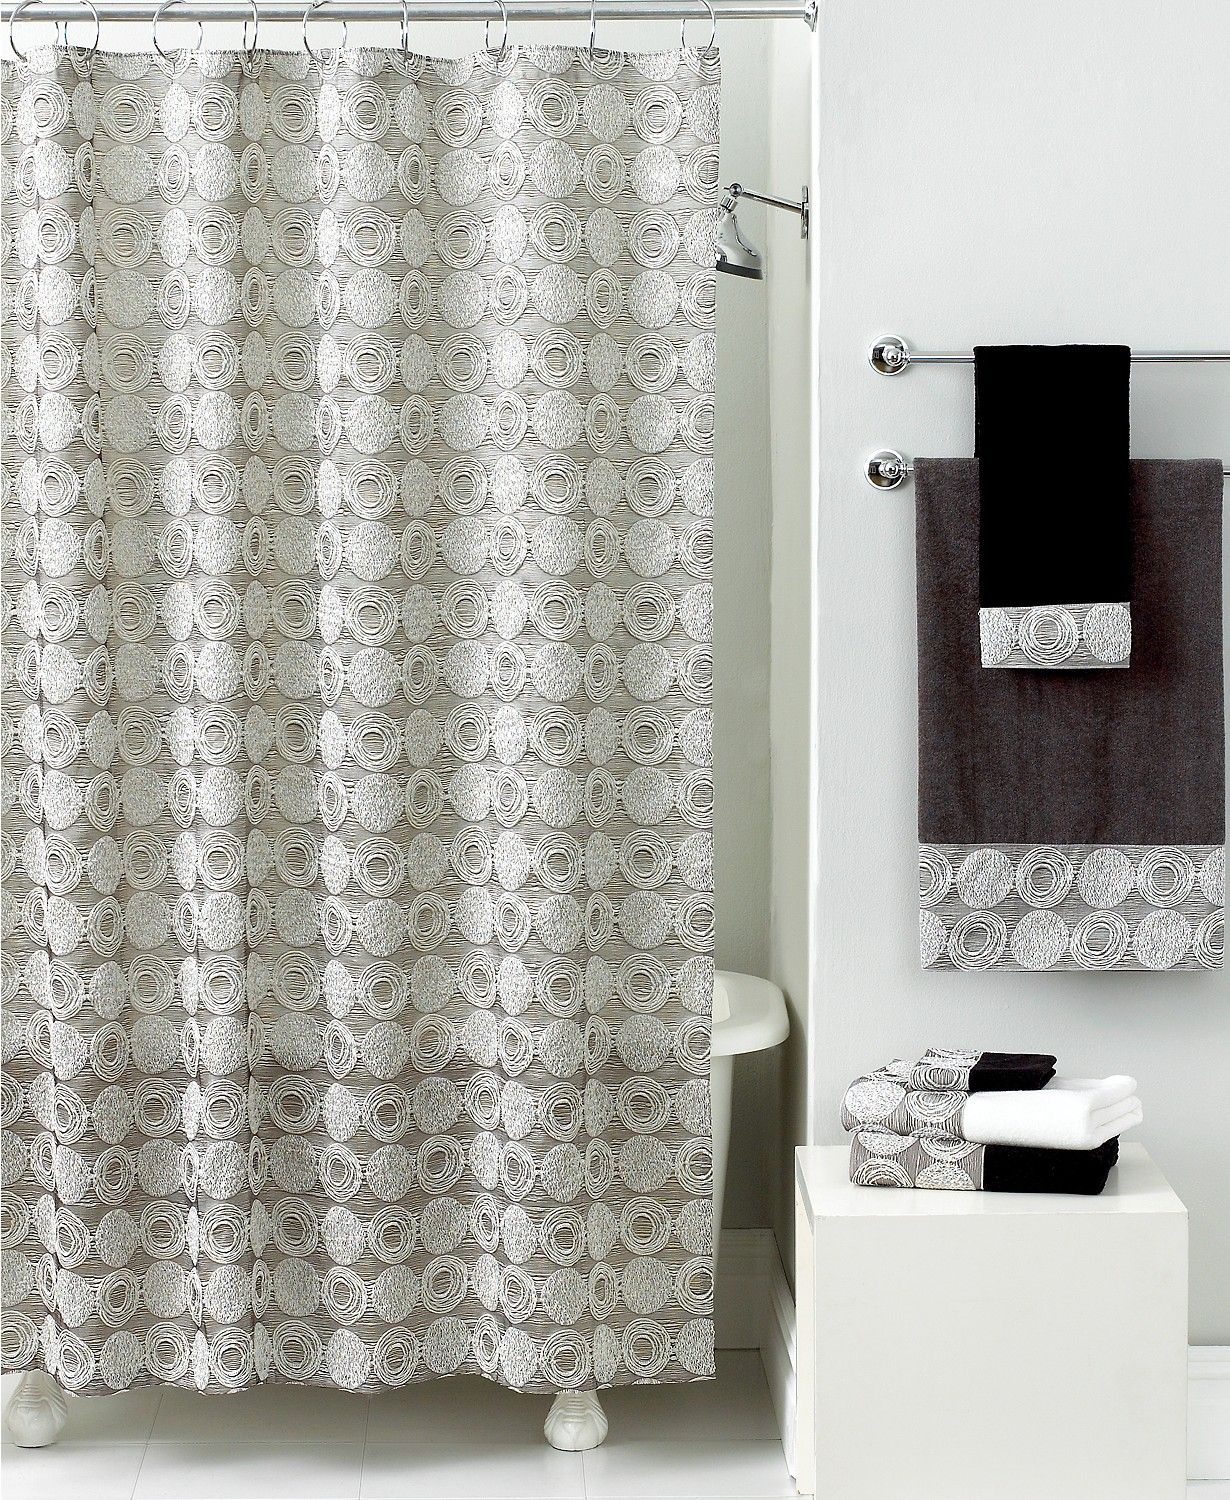 Avanti Bath Accessories Galaxy Shower Curtain Amp Reviews Bathroom Accessories Bed Amp Bath